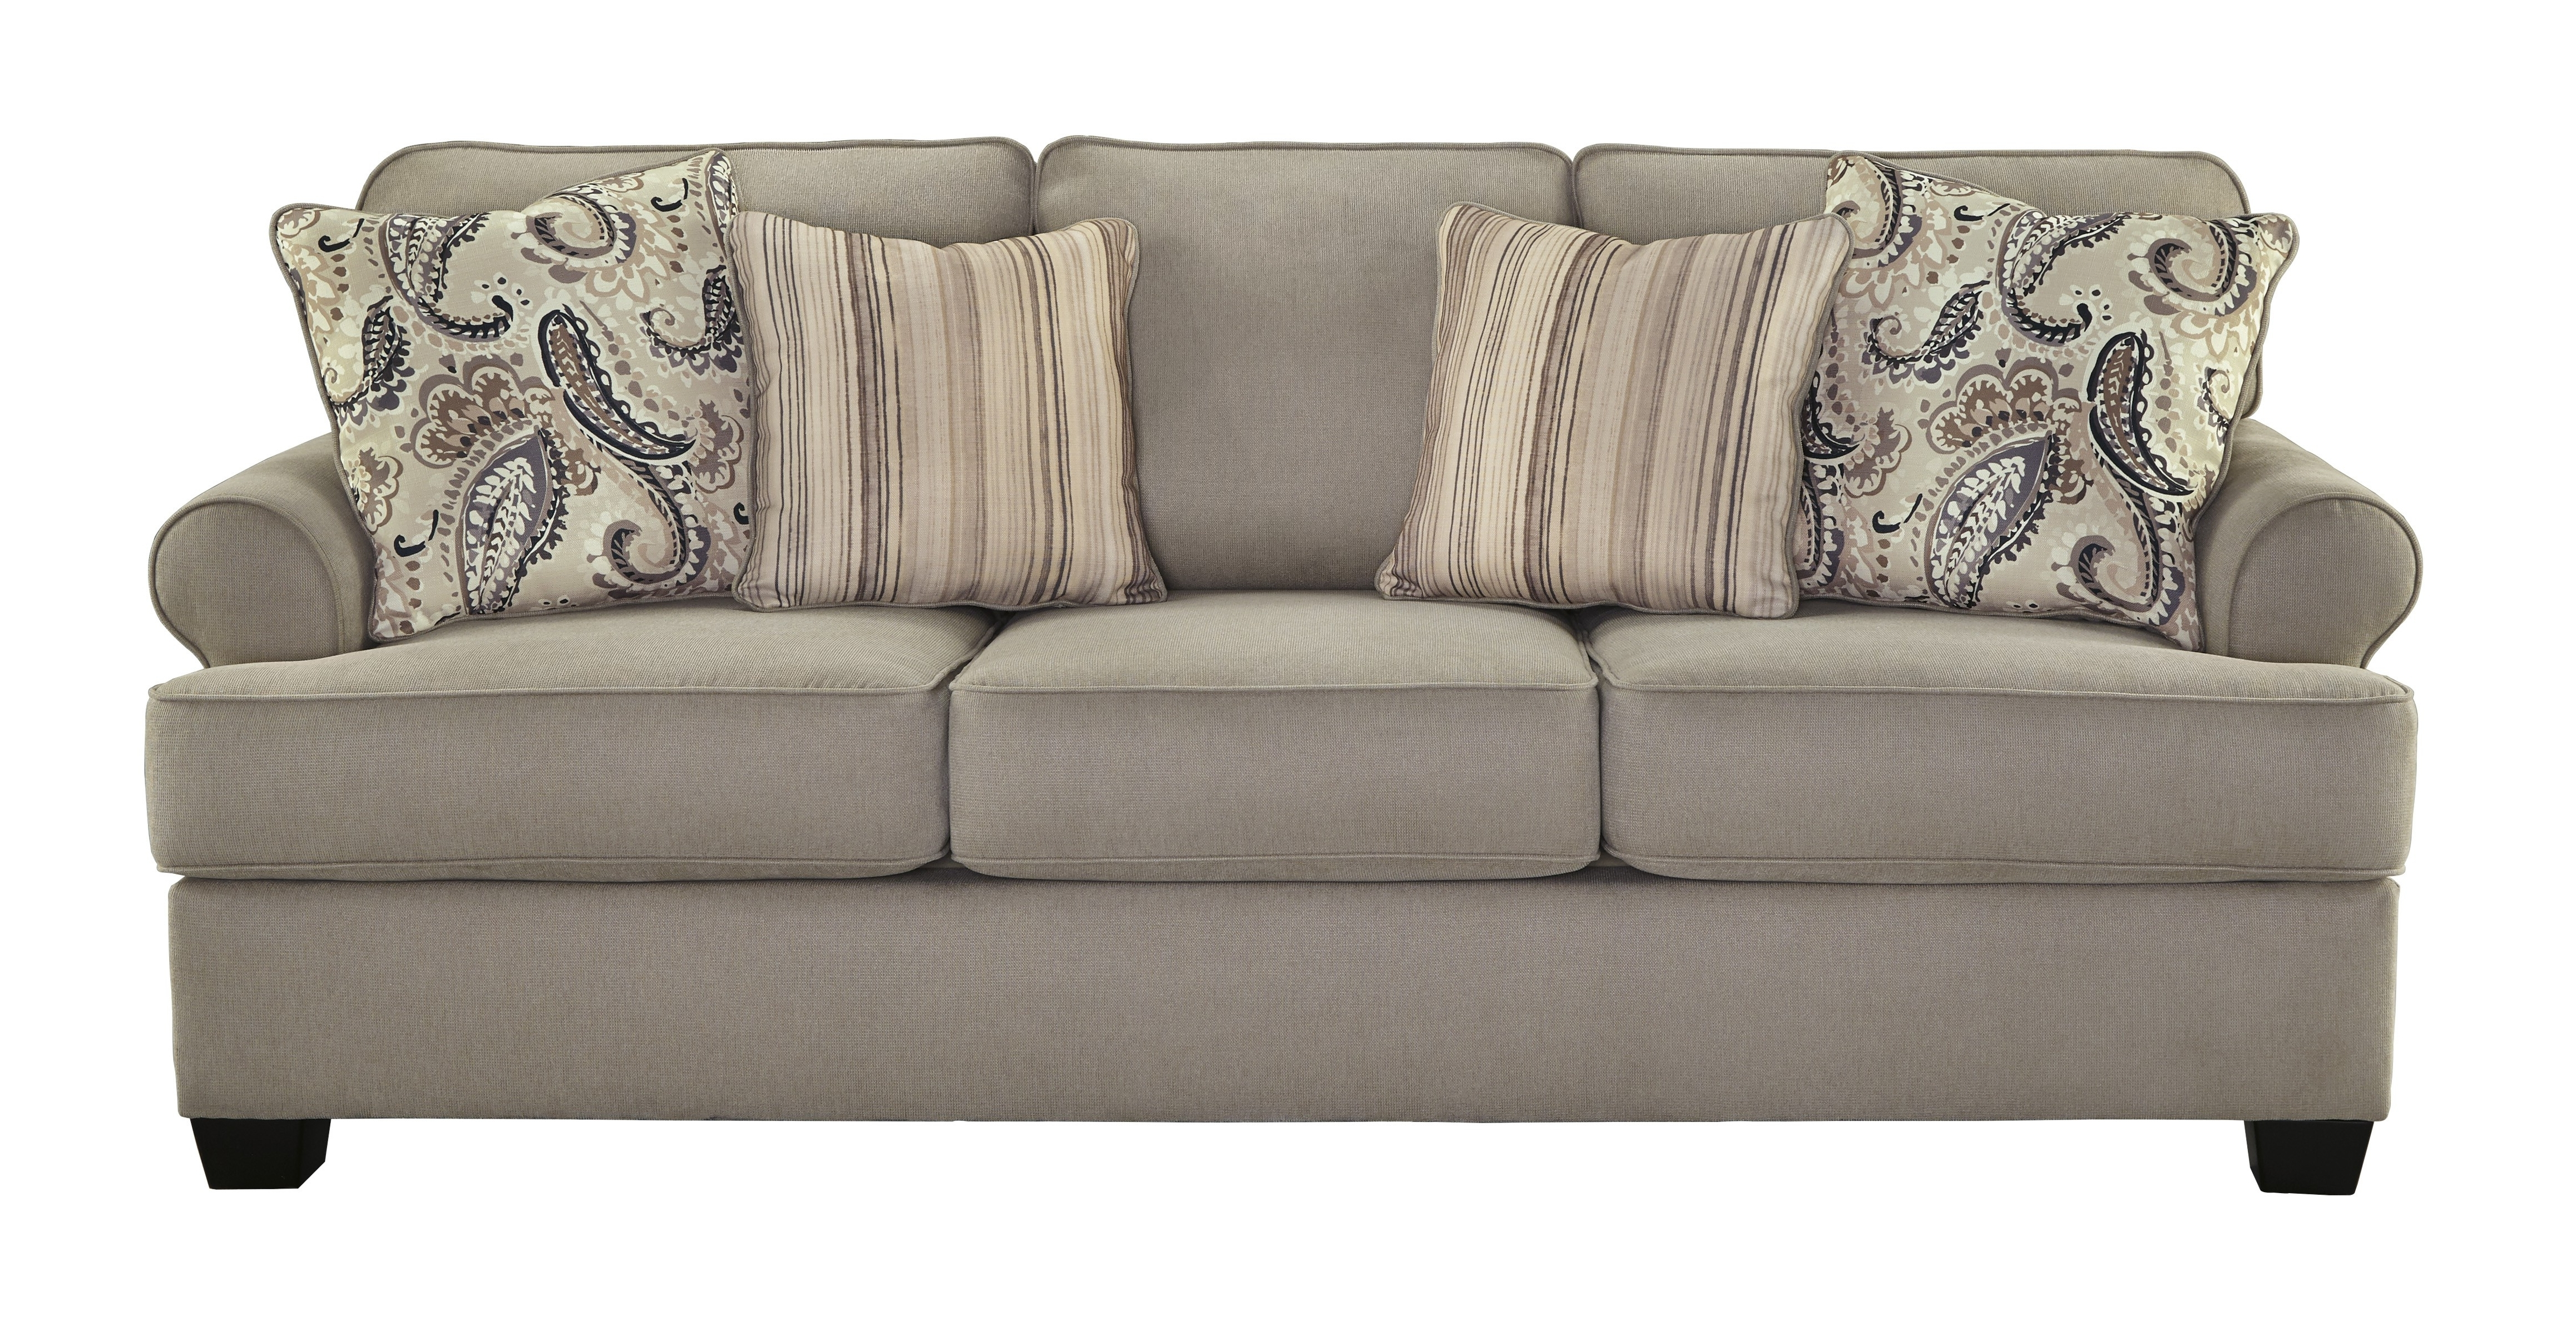 Traditional Fabric Sofas Regarding Most Up To Date Ashley 4780038 Melaya Traditional Pebble Tone Fabric Upholstered Sofa (View 11 of 15)